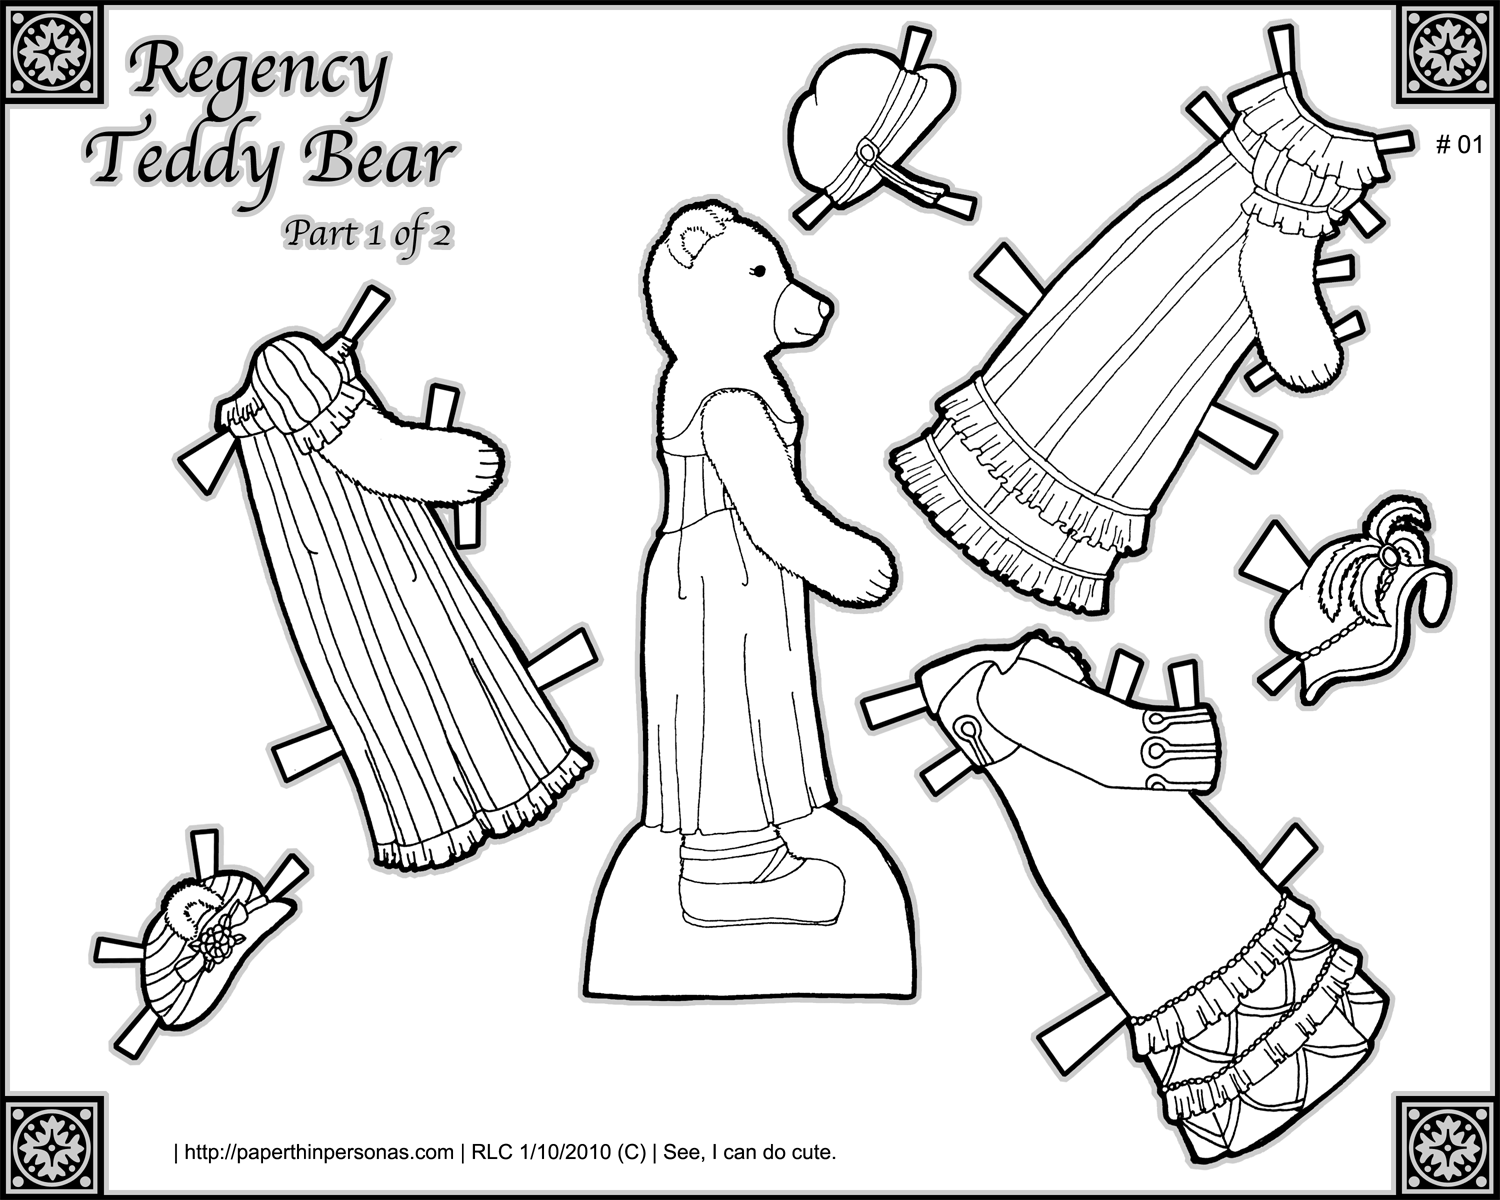 teddy bear paper dolls mostly paper dolls paper dolls dreaming of outer space dolls paper bear teddy